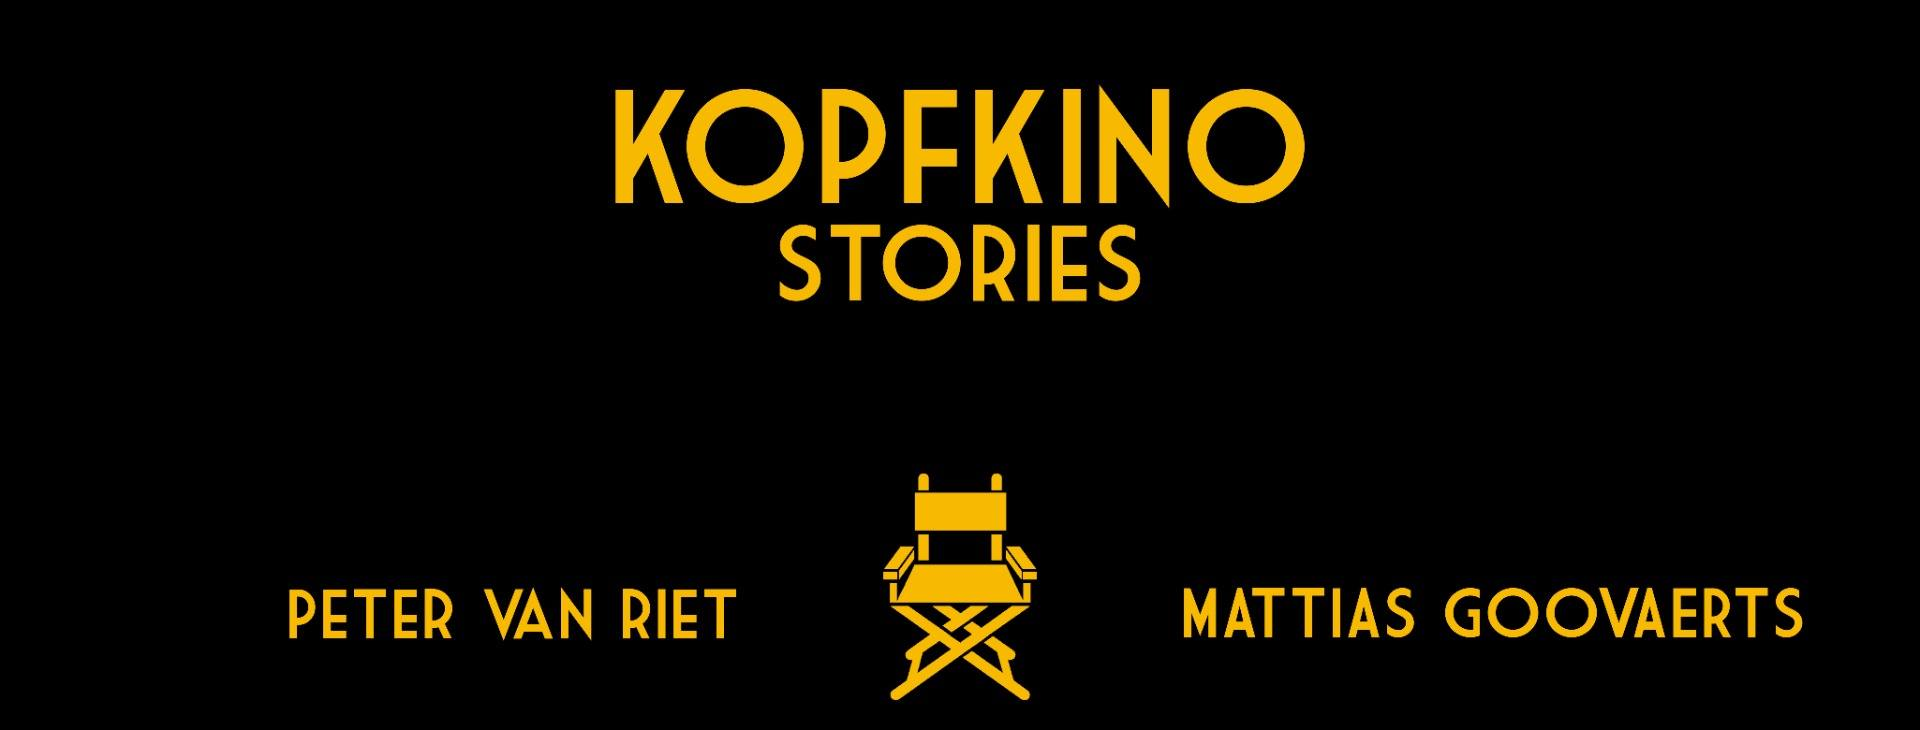 kopfkino stories